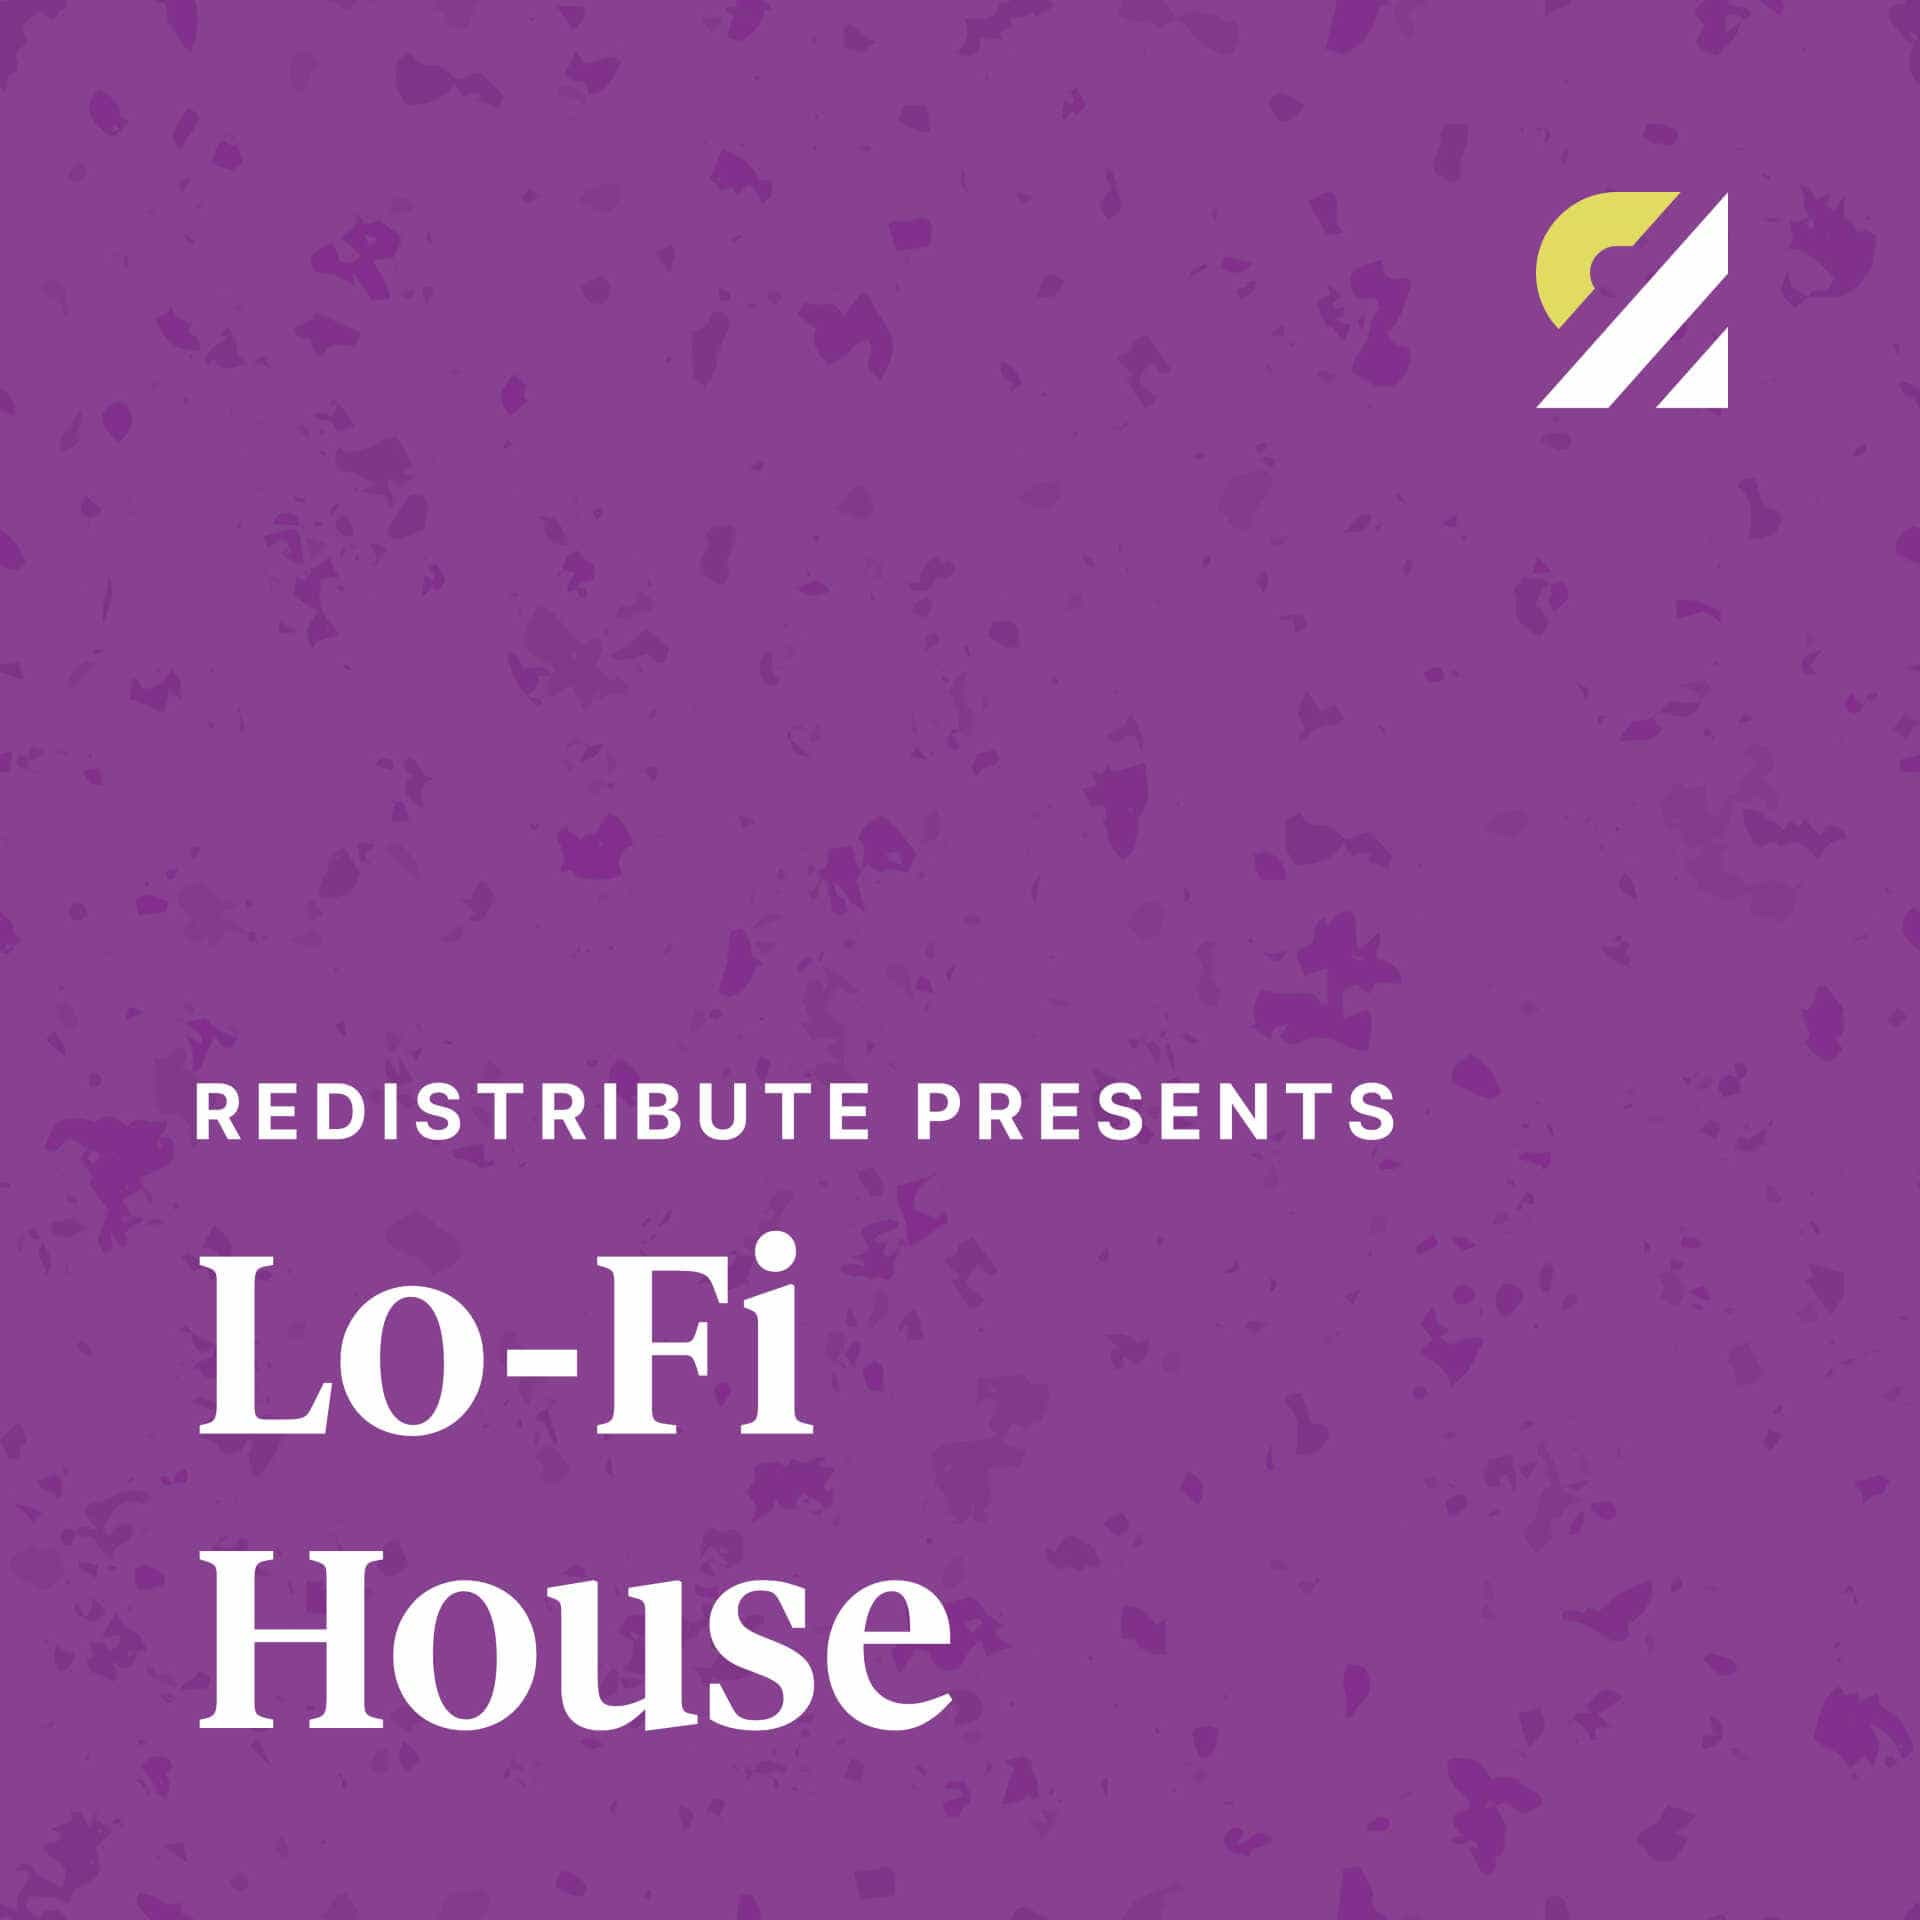 Cover image for the playlist Redistribute Presents Lo-fi House